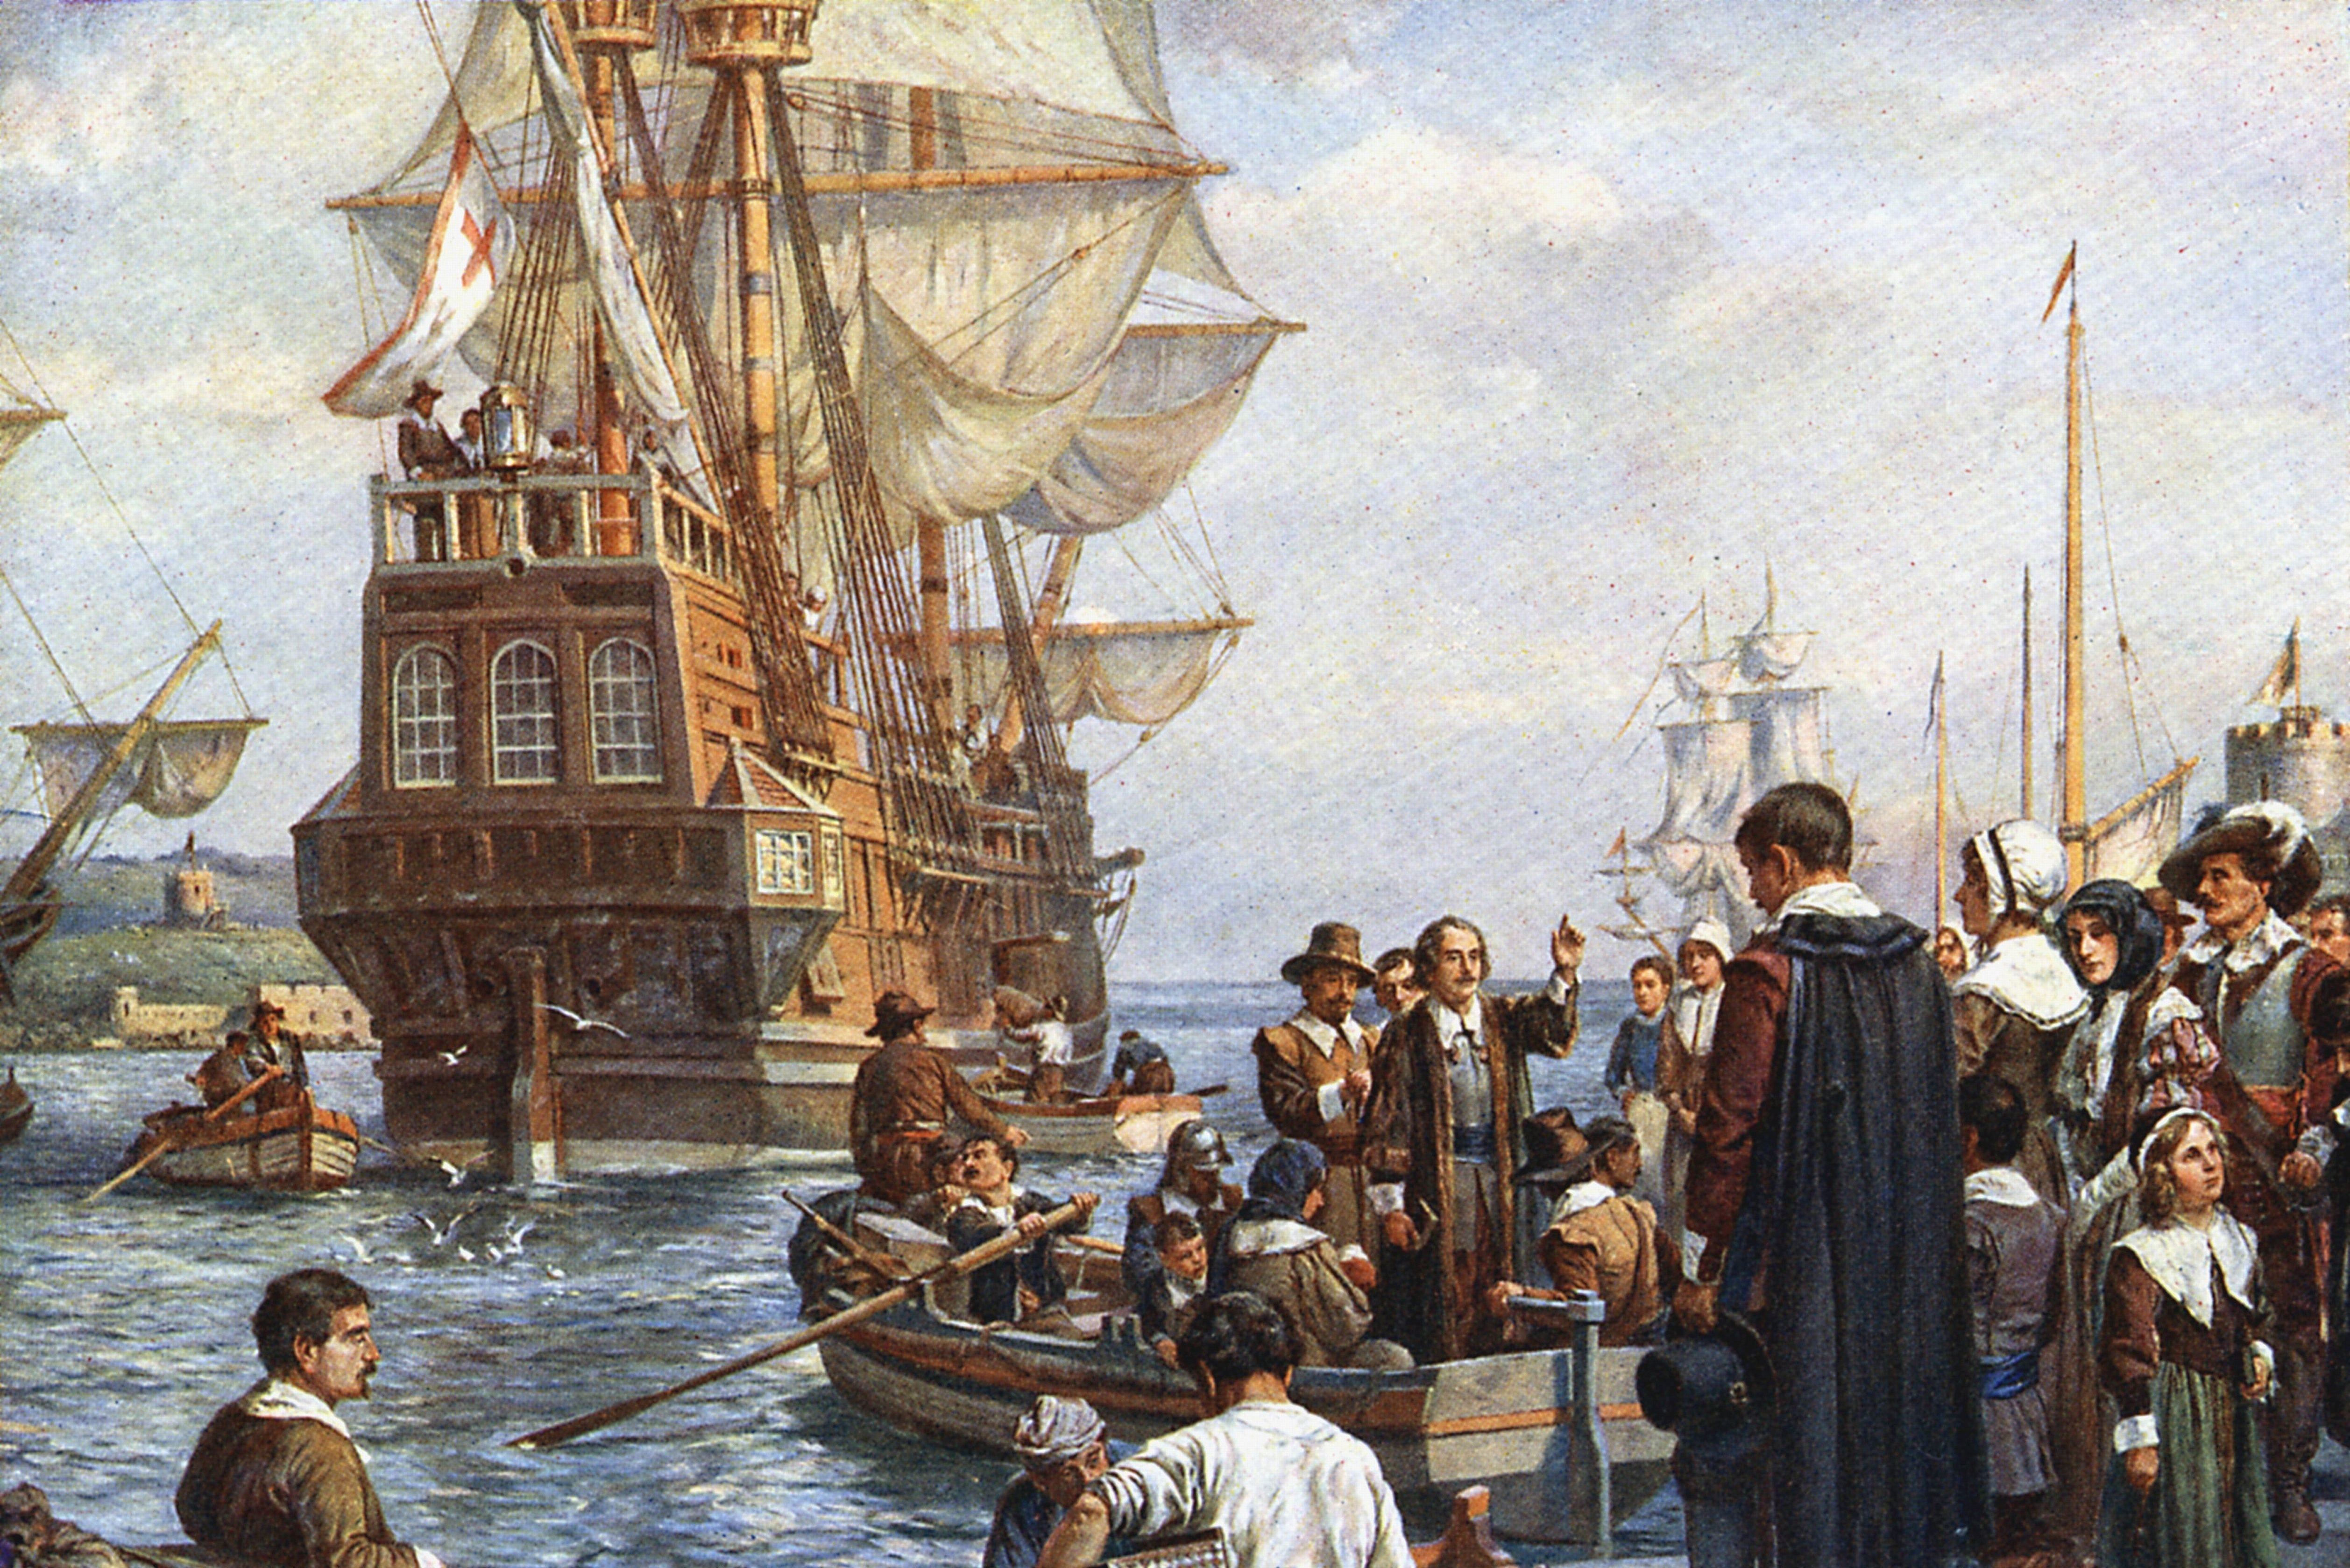 Mandatory Credit: Photo by Universal History Archive/Shutterstock (3864664a) The Pilgrim Fathers boarding the 'Mayflower' for their voyage to America. After painting by Bernard Gribble. VARIOUS